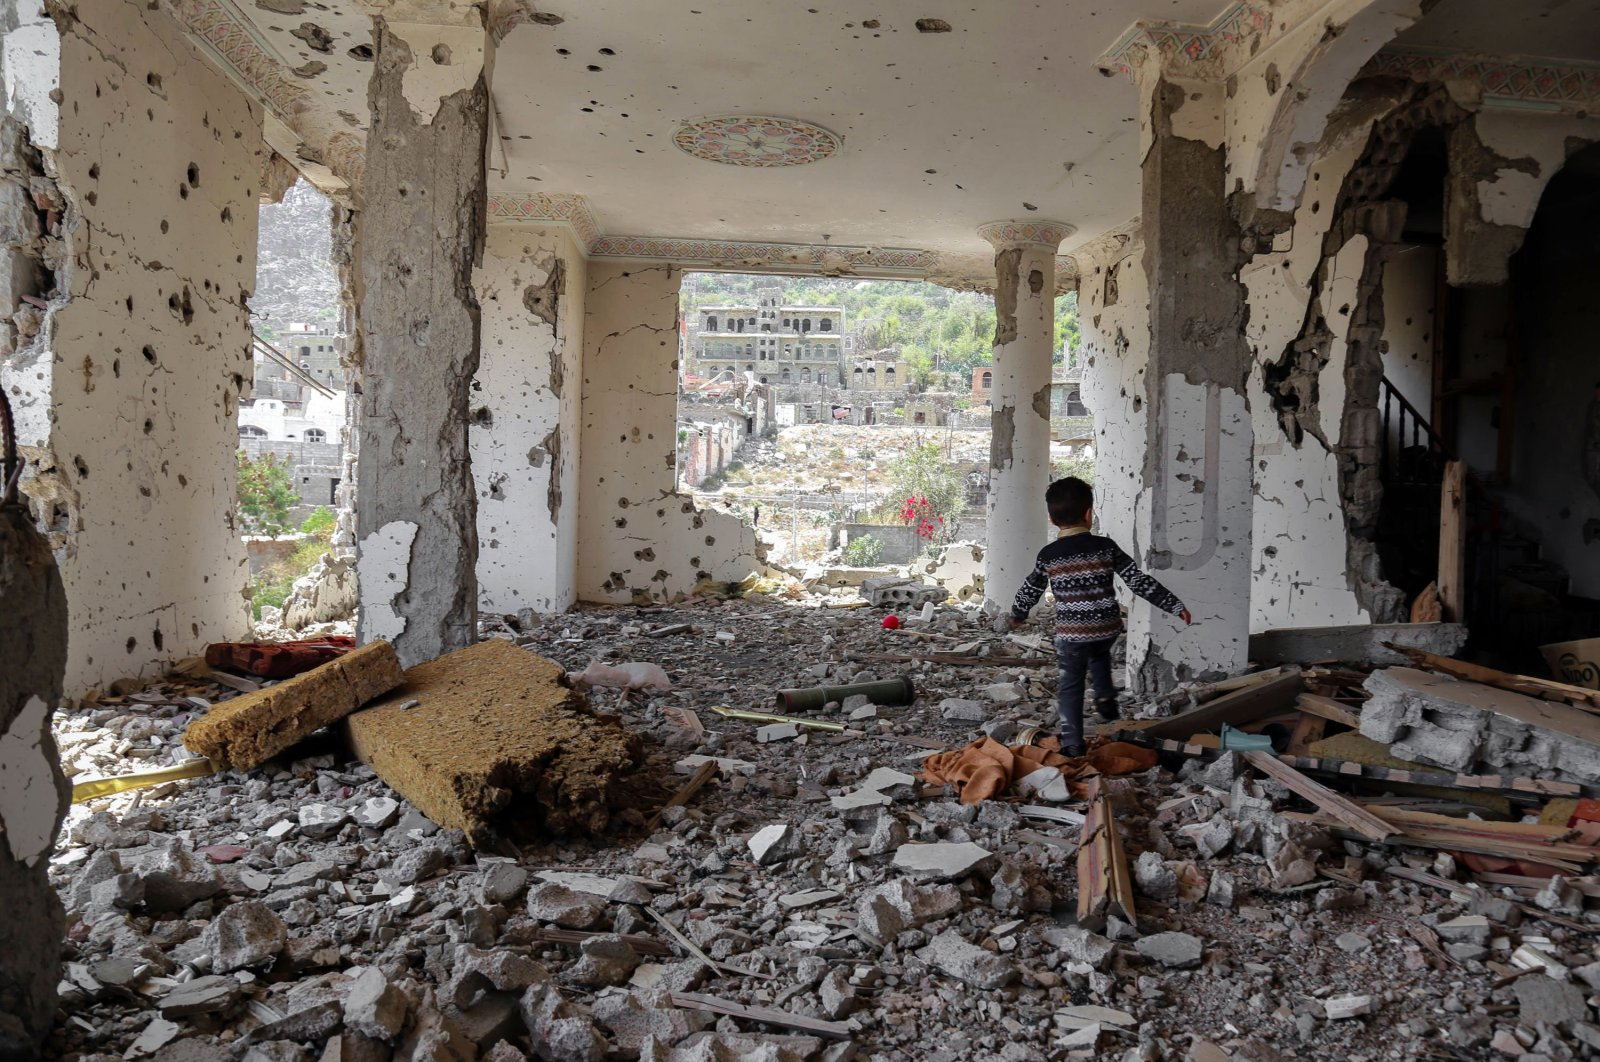 A child walks among the rubble of a building that was destroyed in an airstrike in Taez, Yemen, March 18, 2018. (AFP Photo)